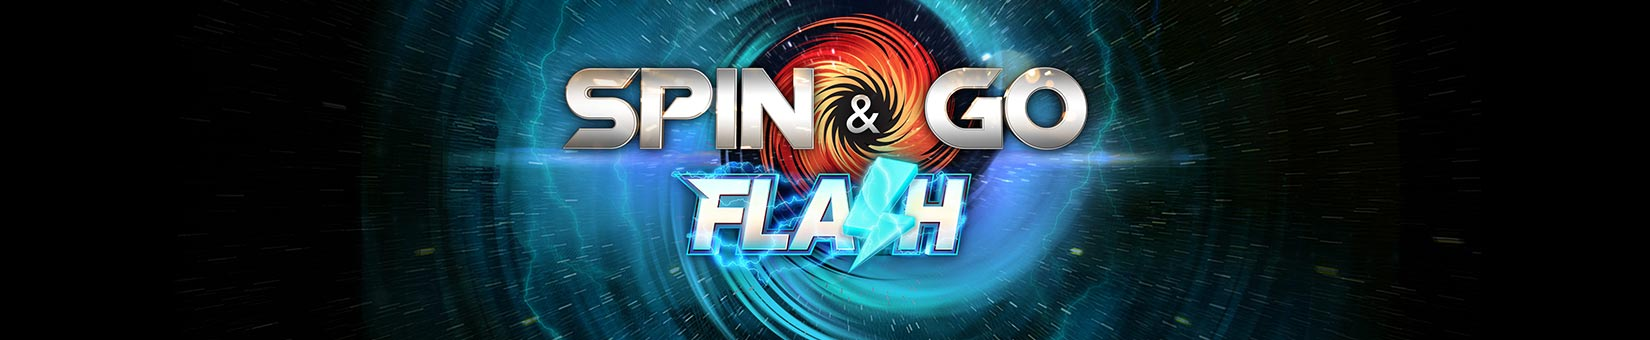 Spin & Go Flash на PokerStars